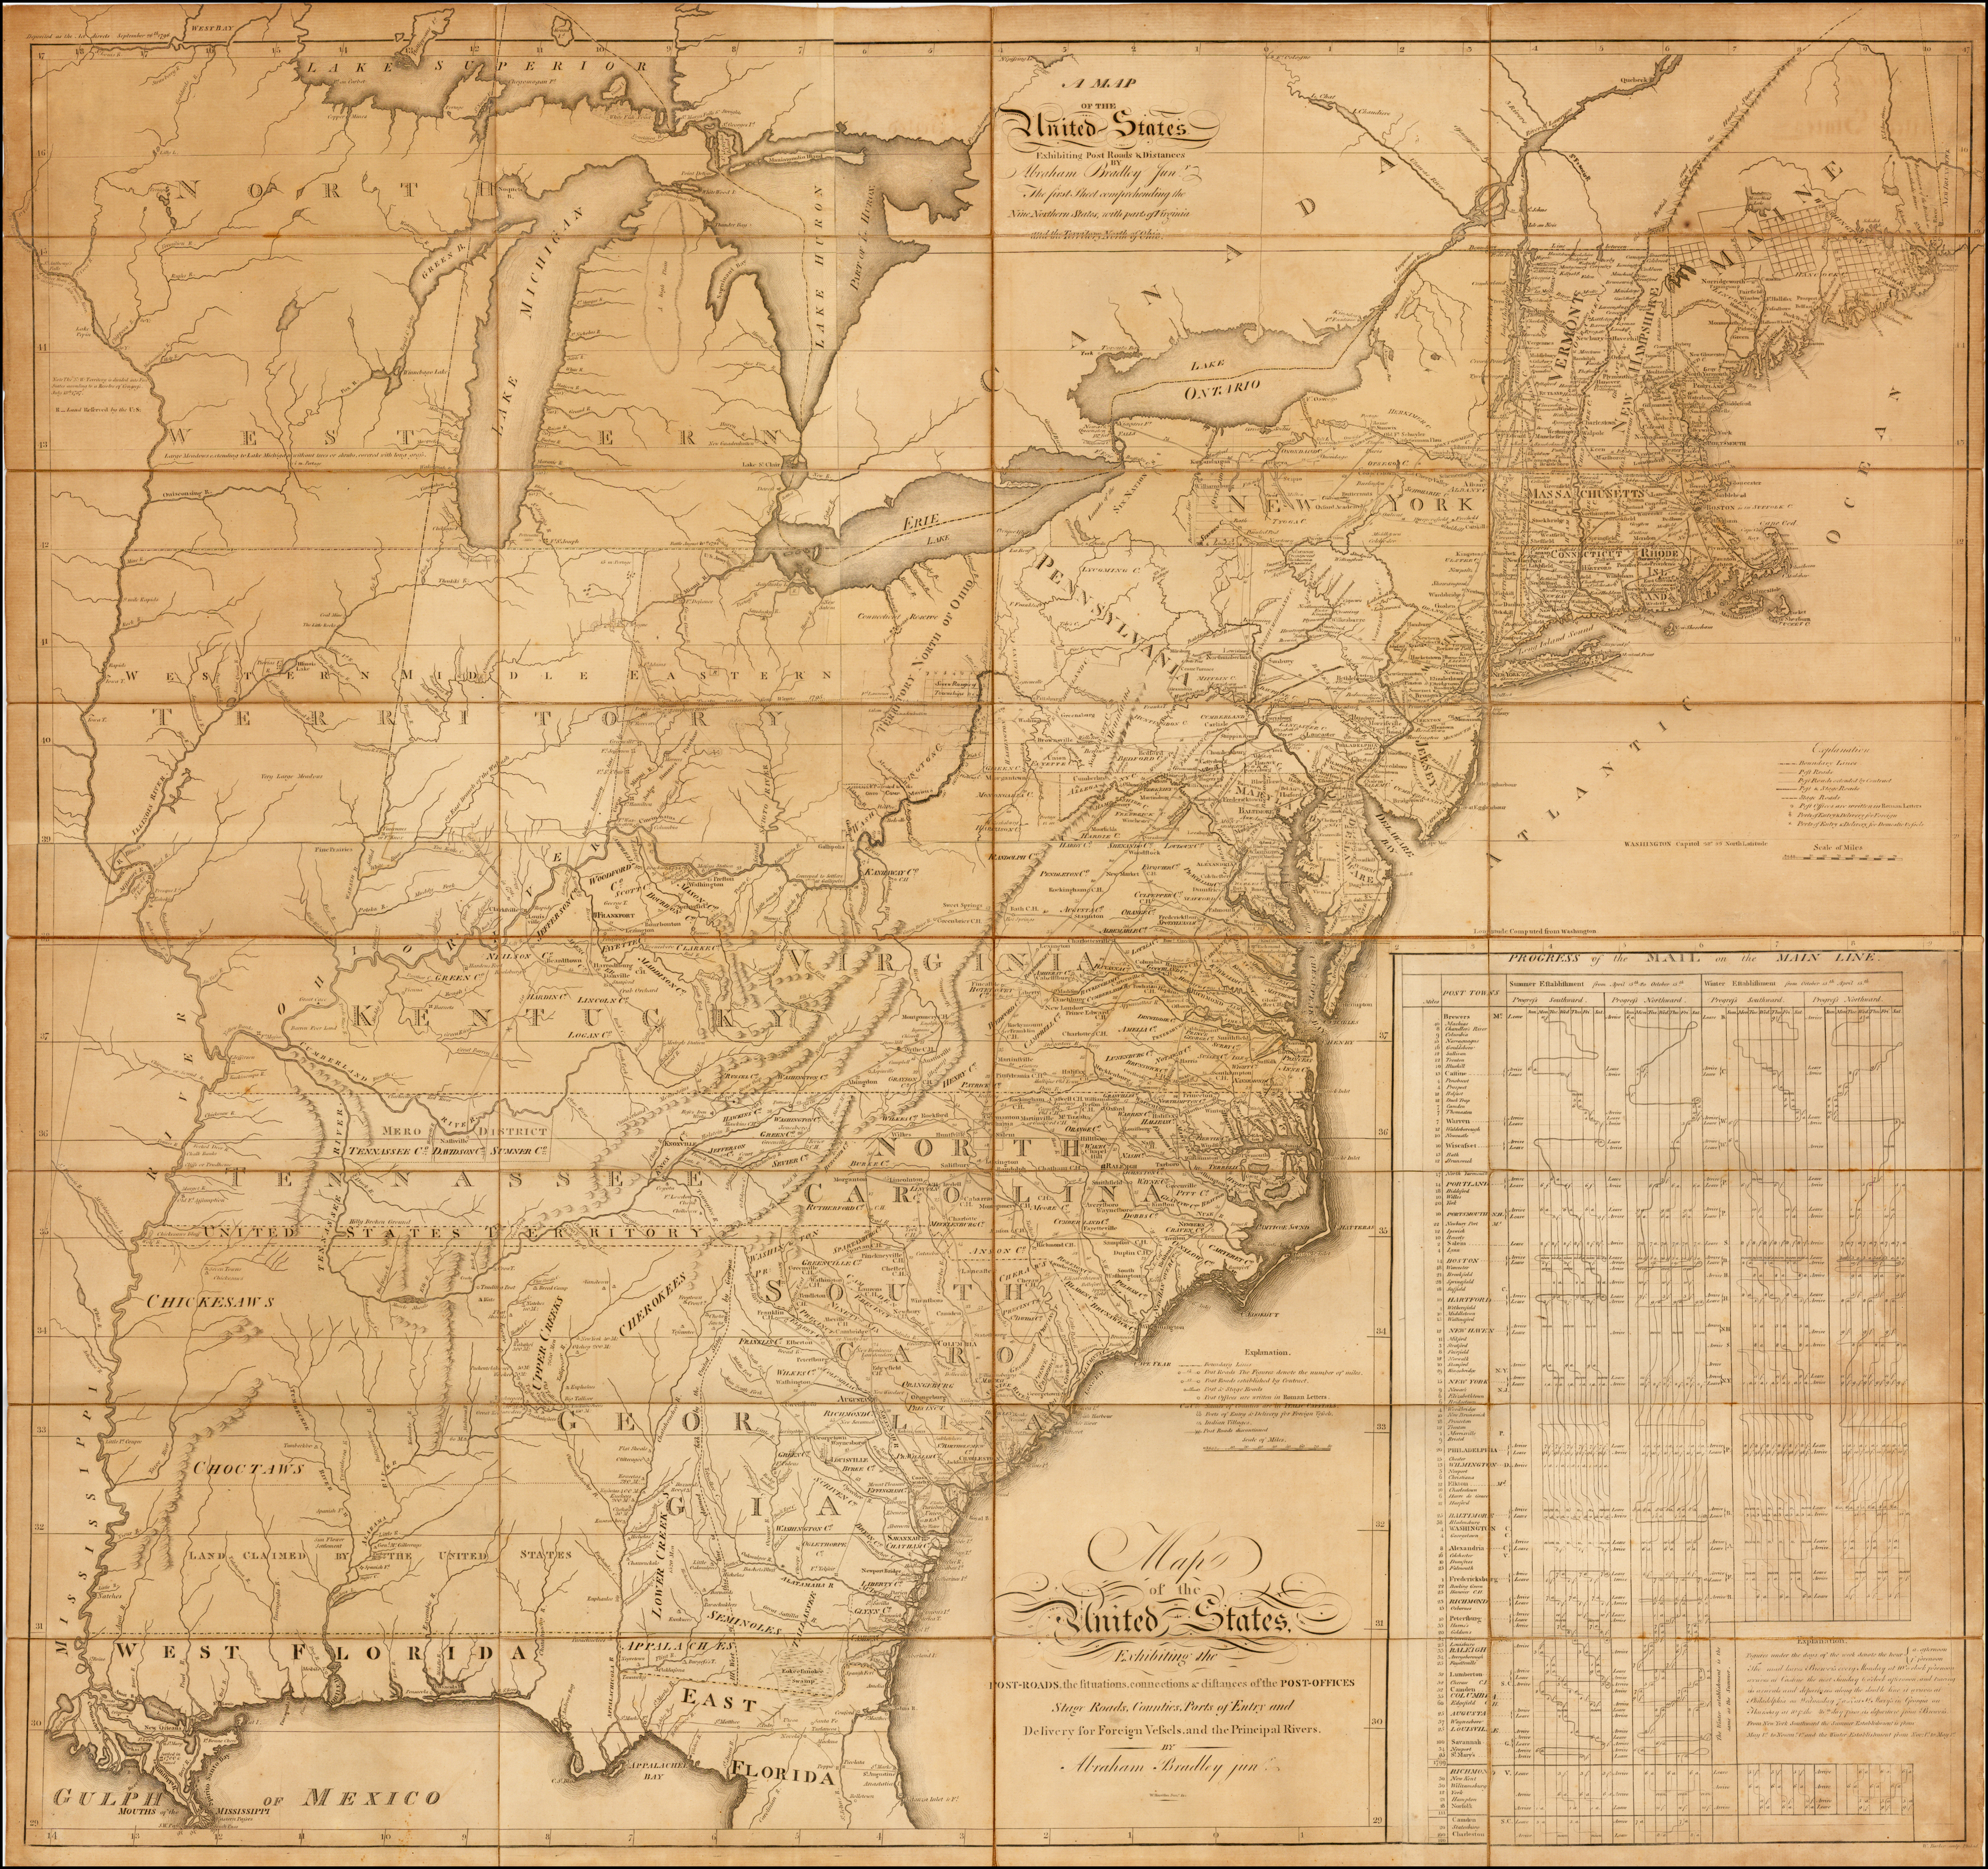 Abraham Bradley's postal map of the United States -- one of the most important 18th century maps of the United States, and a landmark in both the history of cartography and American Postal history. Bradley's map is one of only four large format maps of the United States to have been published in America prior to 1800. The map provides an exceptionally detailed look at the post offices and postal routes of America, as they existed at the end of the 18th Century, locating every post office then in operation. The map also includes the first known printing of the first American postal delivery time and route schedule.